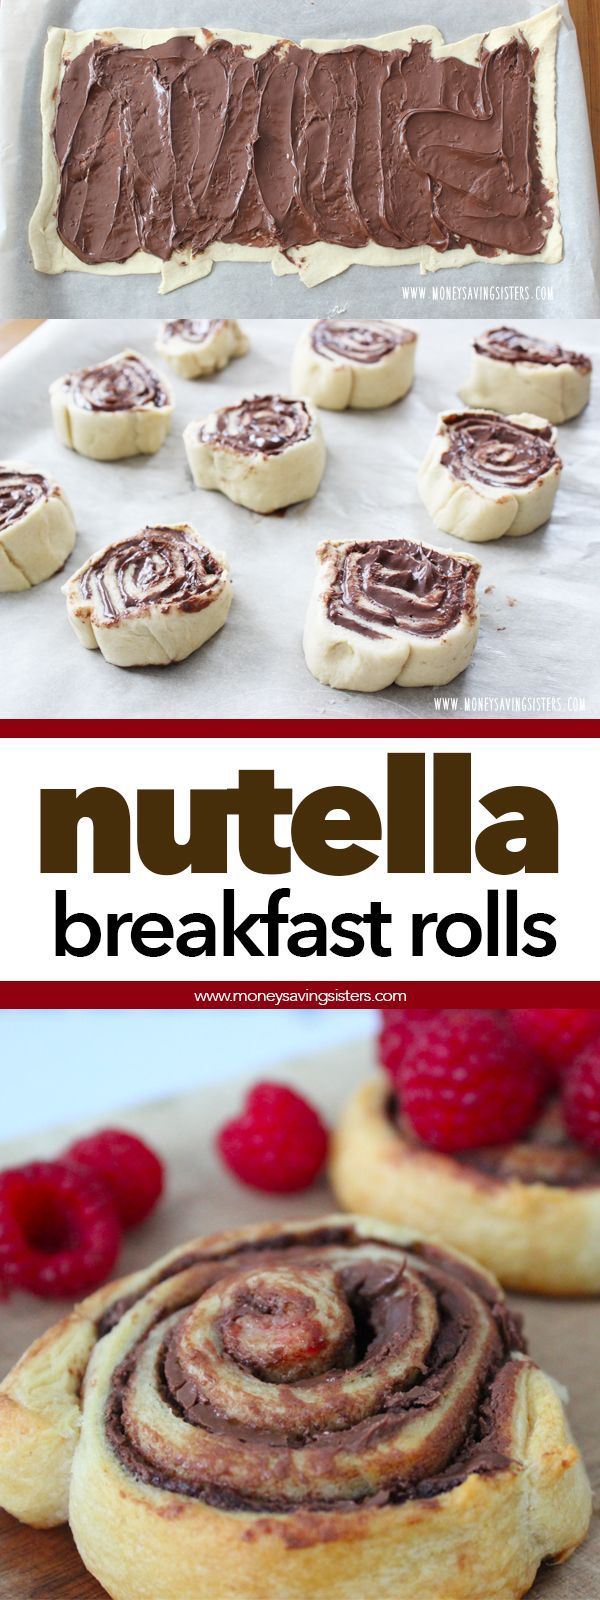 Who says you can't have Nutella for breakfast? Here's an easy  recipe to make stuffed Nutella breakfast rolls. Head over to MoneySavingSisters.com to see the recipe.